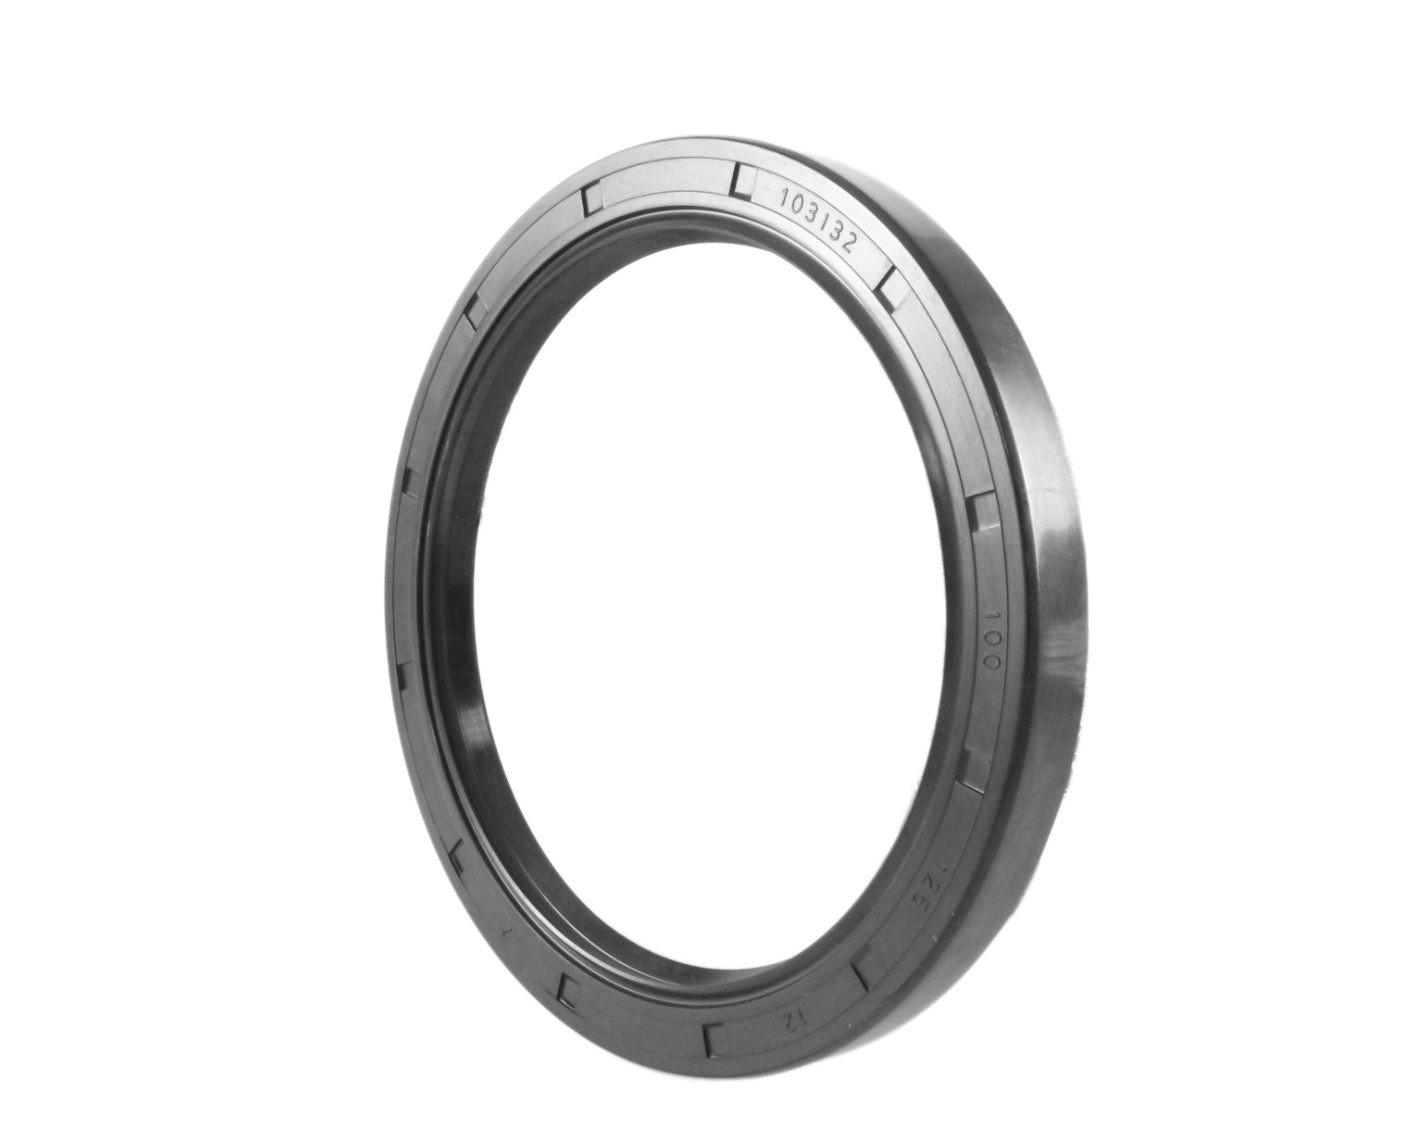 3 PCS 0.394x0.984x0.276 Oil Seal Grease Seal TC  EAI Double Lip w//Garter Spring Single Metal Case w//Nitrile Rubber Coating 10mmx25mmx7mm Oil Seal 10X25X7